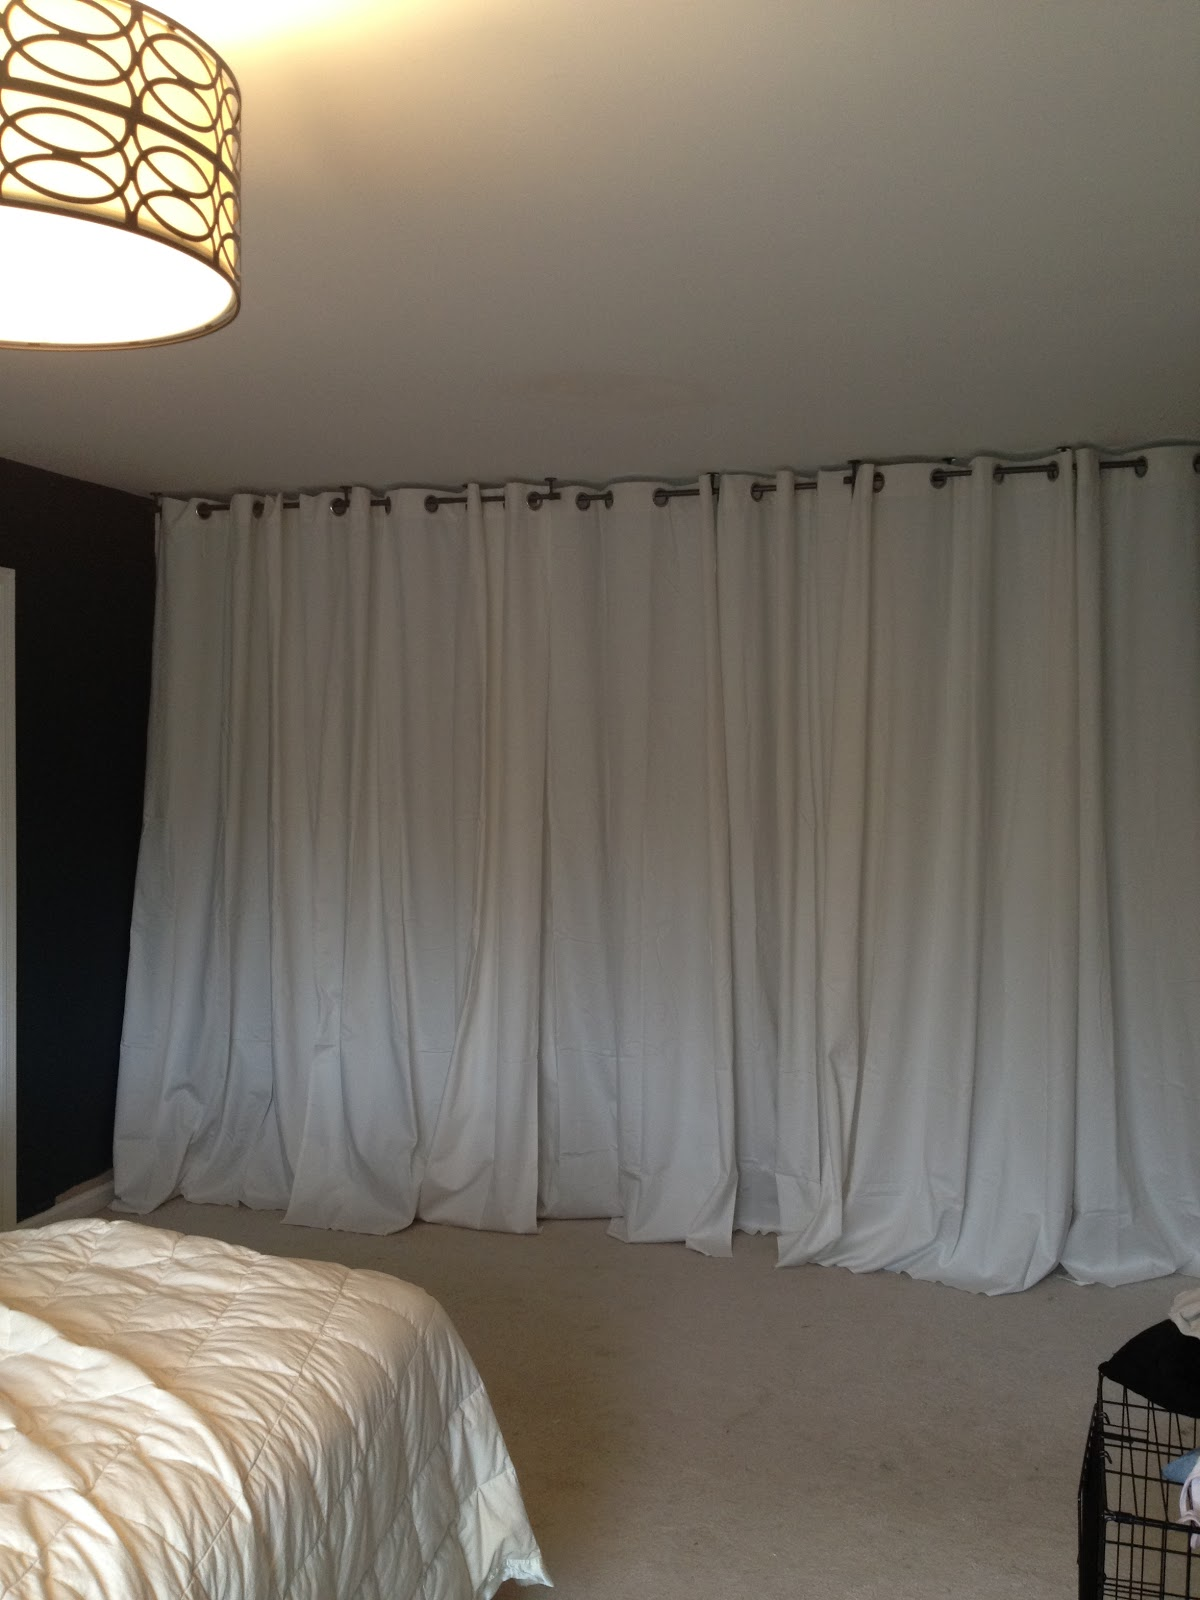 Room Divider Curtains | Using Curtains to Divide A Room | Room Divider Curtain Track